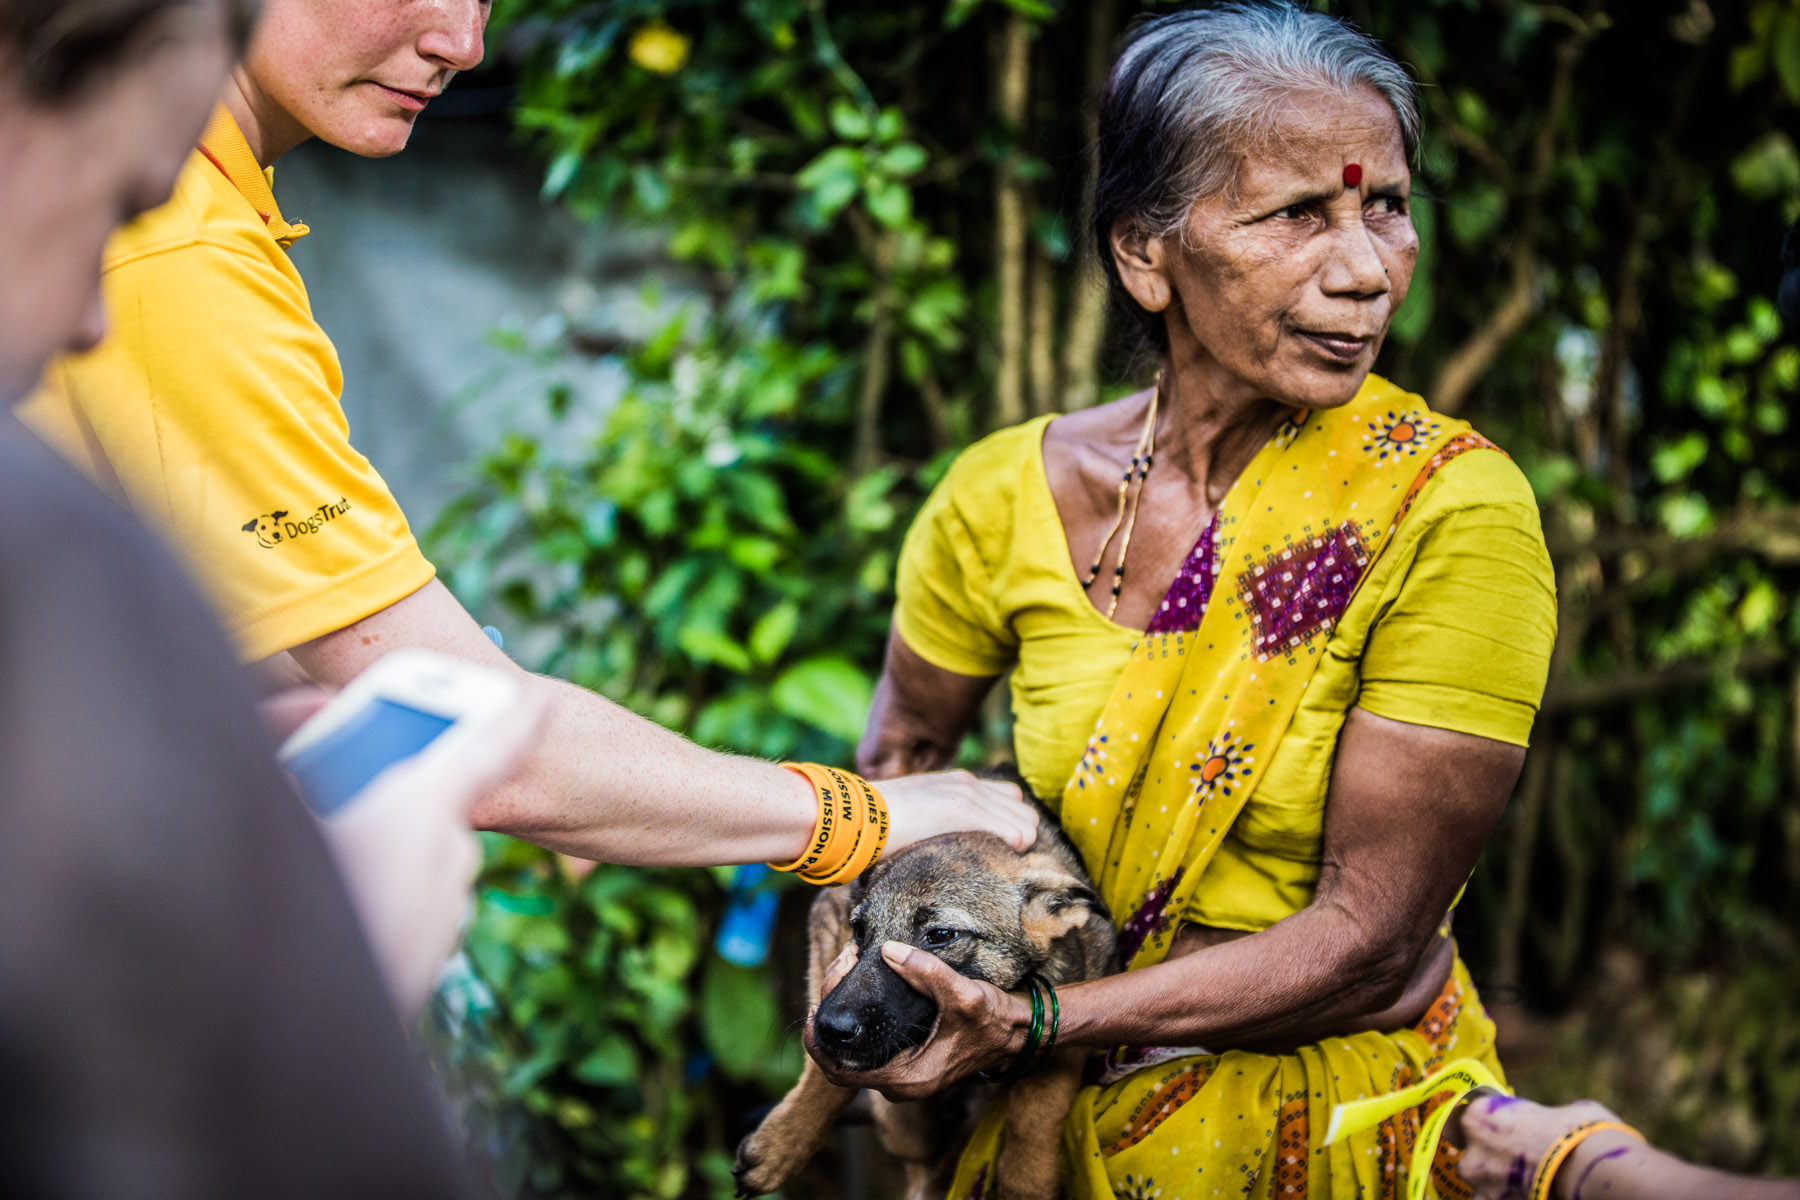 Documentary Charity Photography for Mission Rabies in India by Richard Murgatroyd